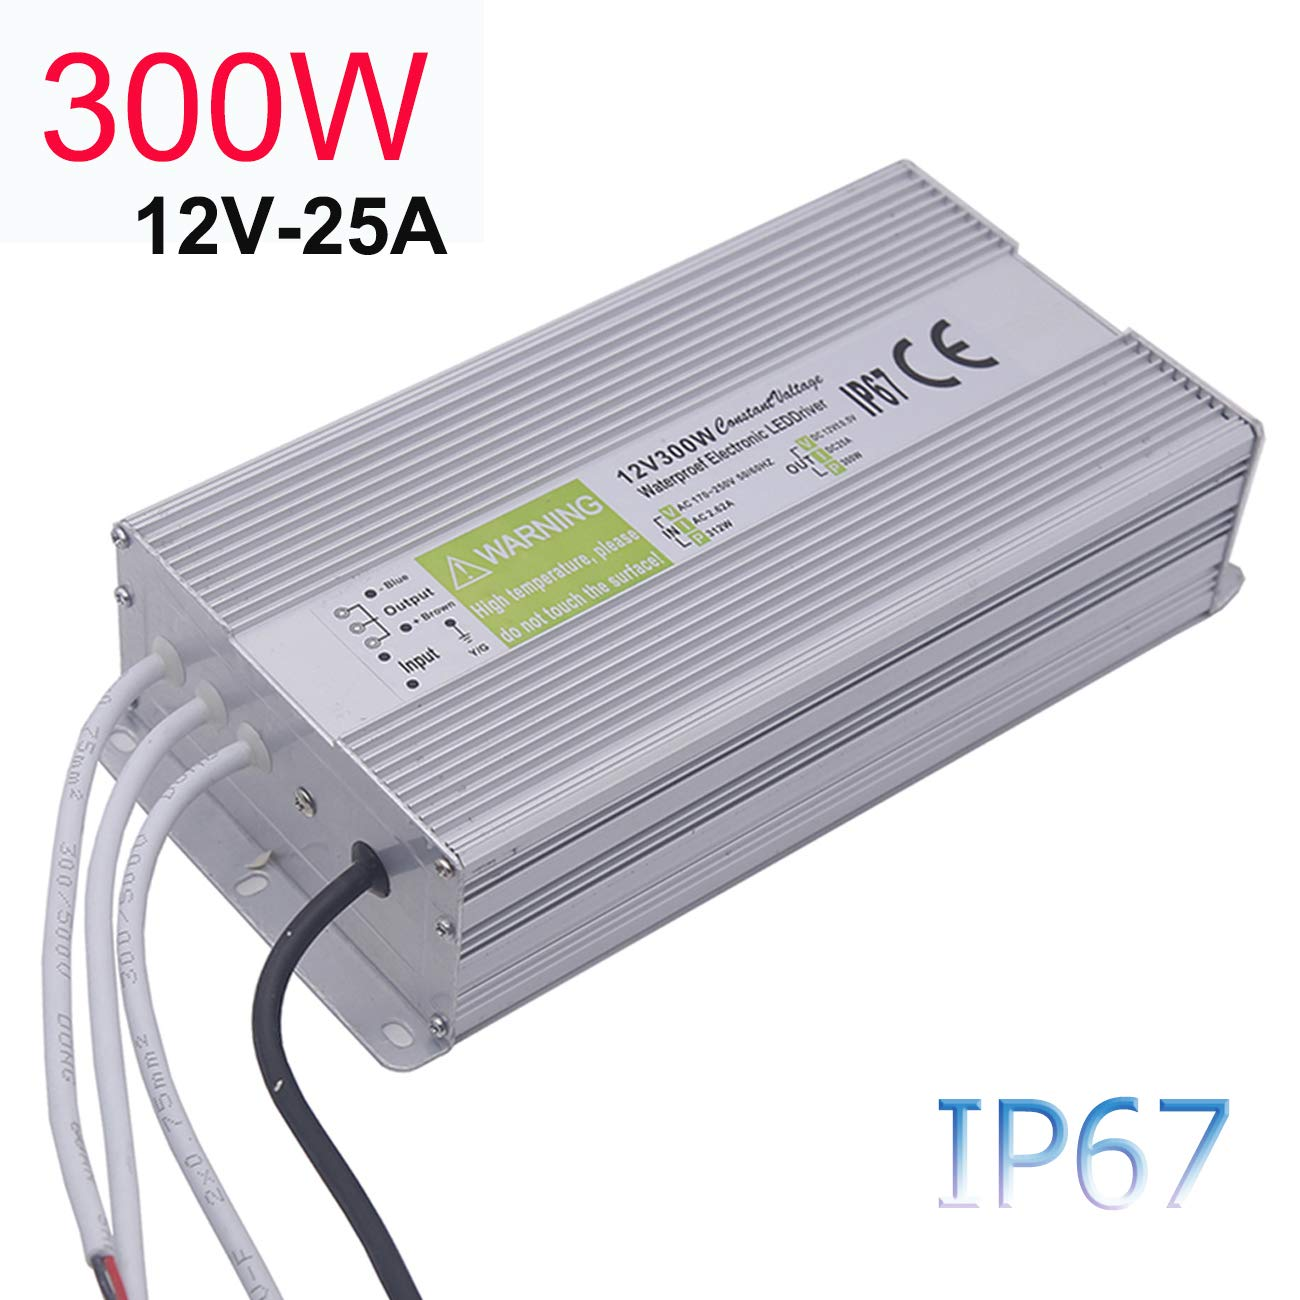 LED Driver 300W, EAGWELL Waterproof IP67 Power Supply 12V 25A DC Transformer Adapter Thinner and Durable Low Voltage Power Supply for LED Light, Computer Project, Outdoor Light